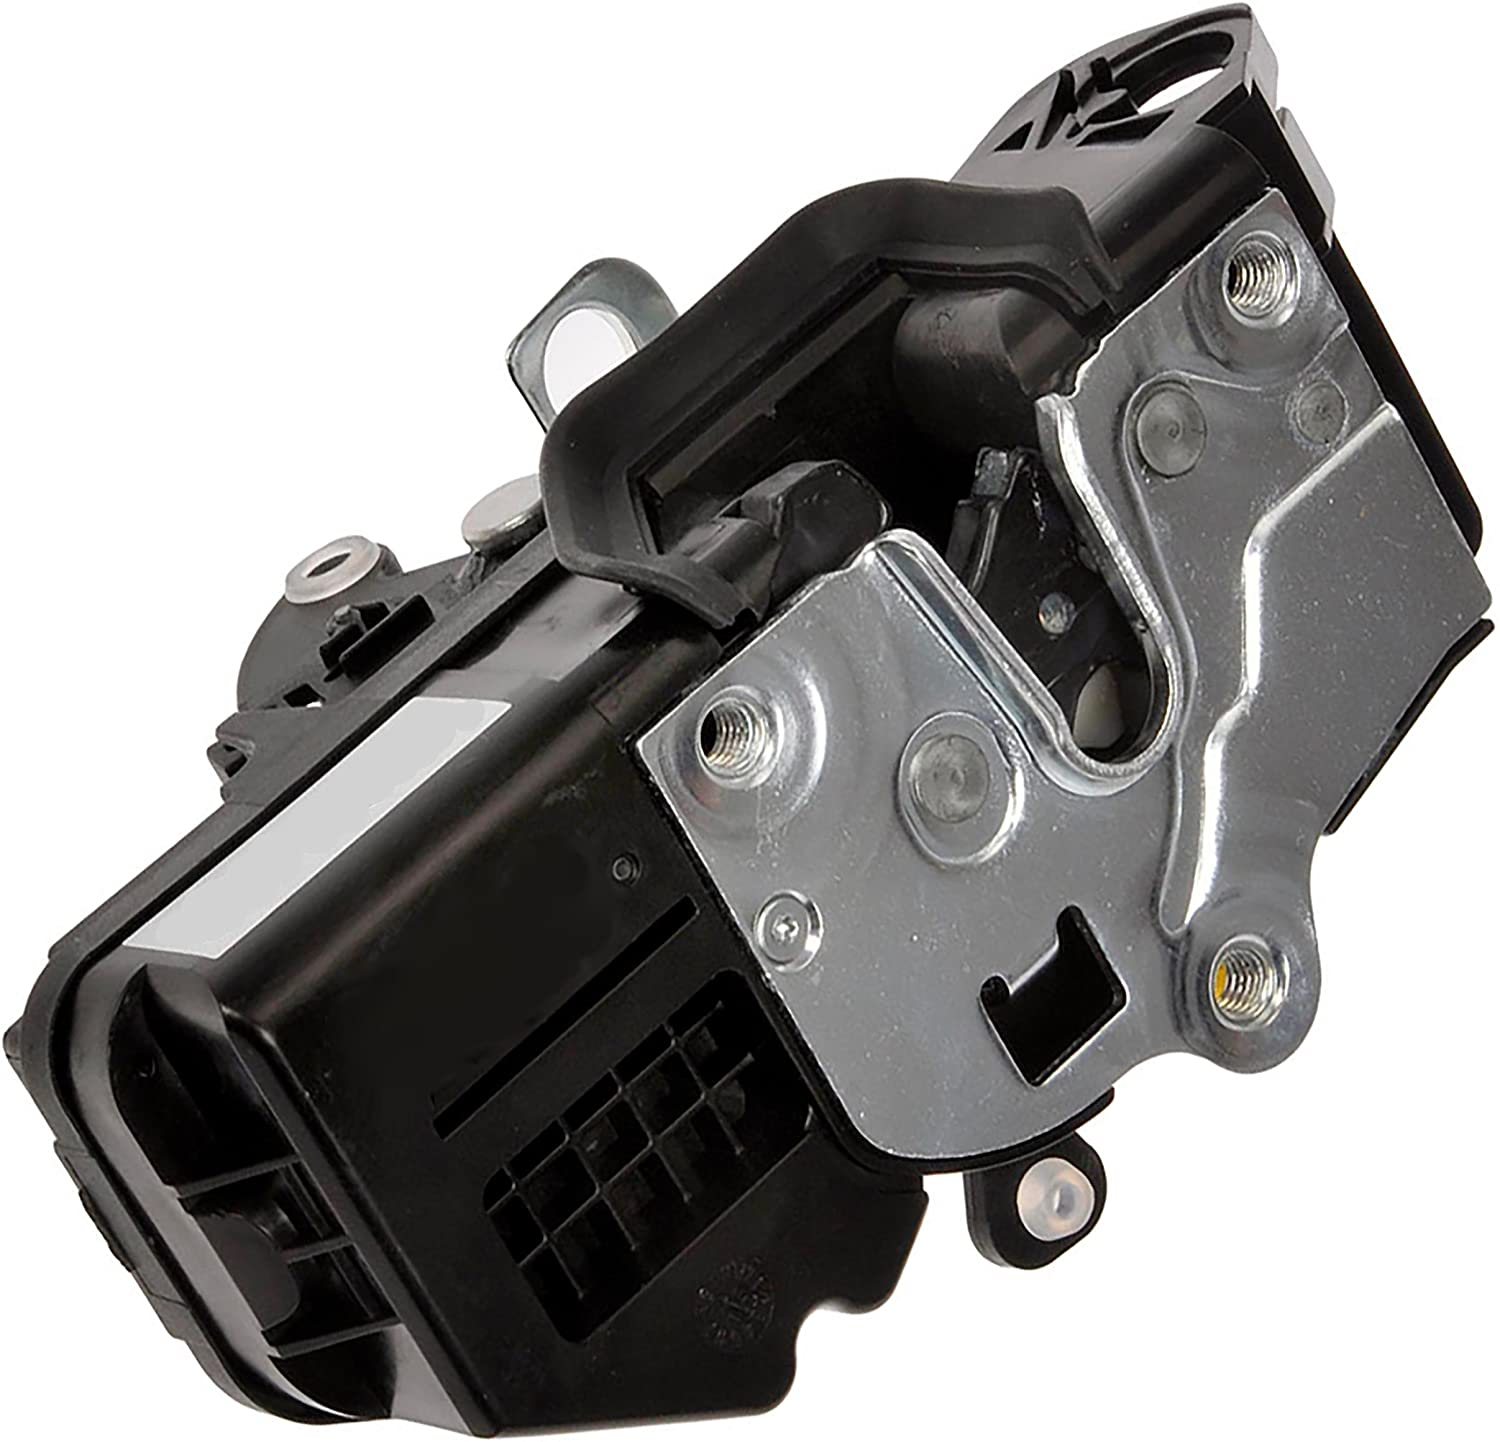 APDTY 136192 Front Left (Driver-Side) Door Lock Actuator Fits Select 2009-2014 Chevrolet/GMC (Replaces 20783844, 22862020)